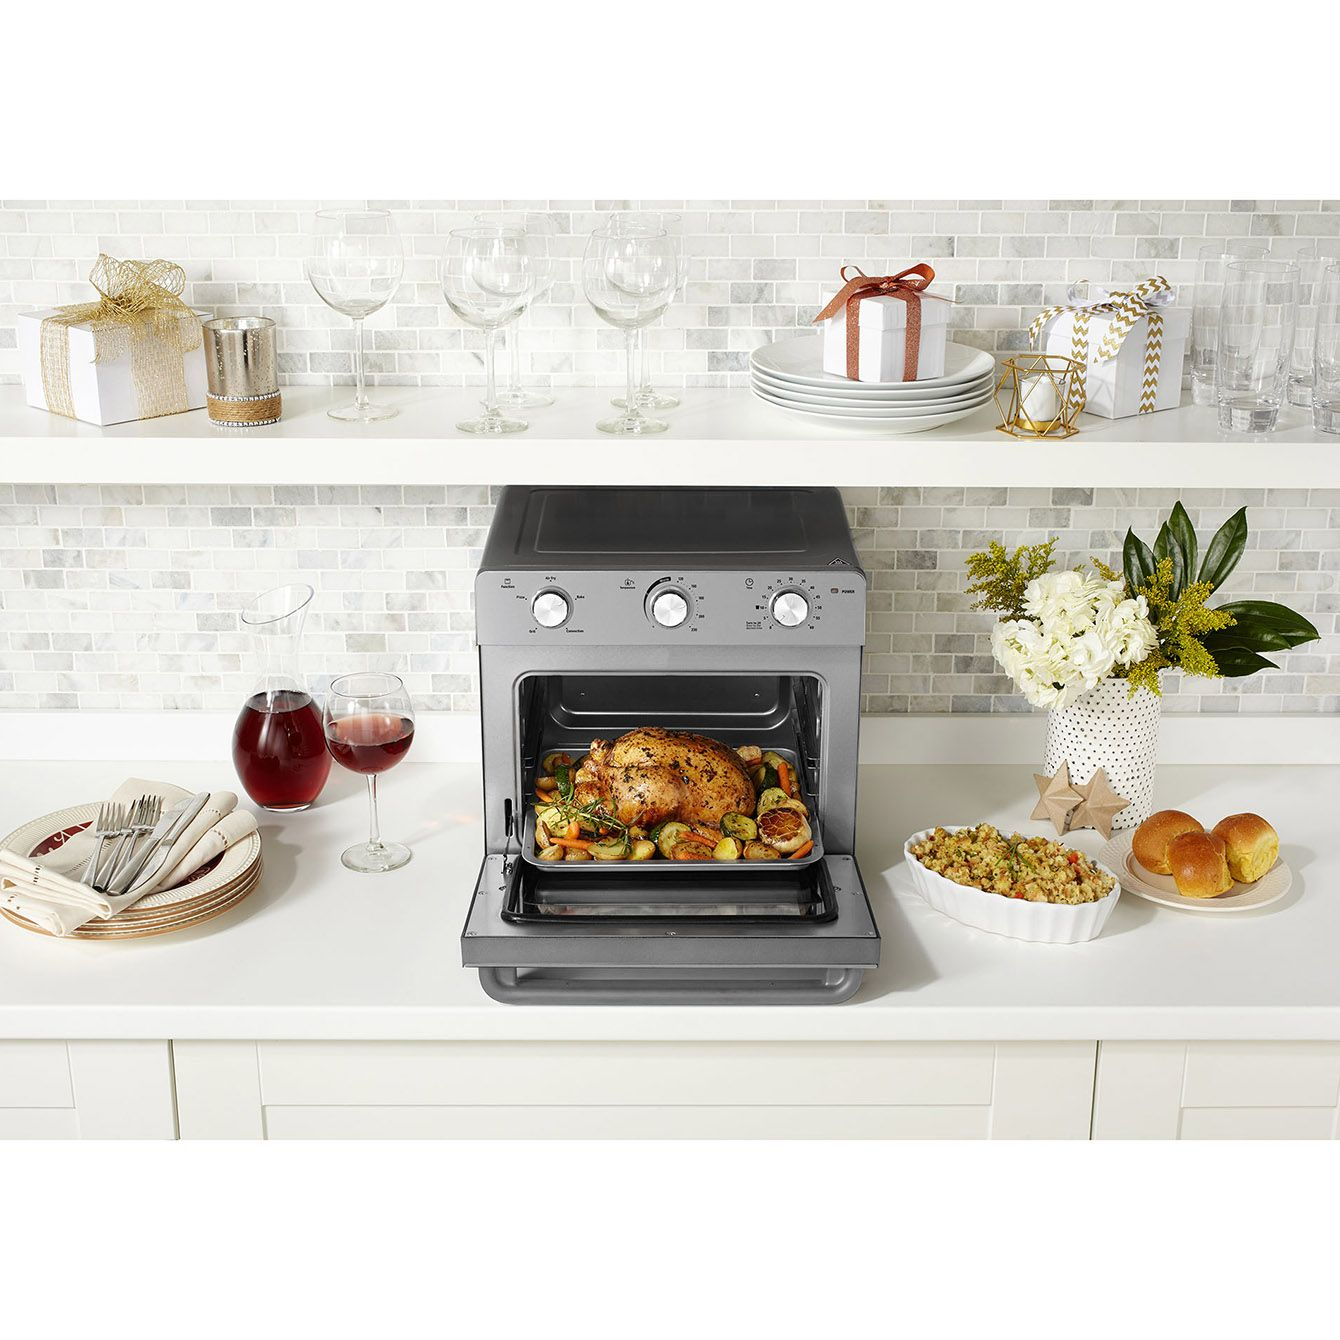 Sunbeam Multi Function Oven + Air Fryer makes healthier fries, chicken nuggets, pizzas and cakes